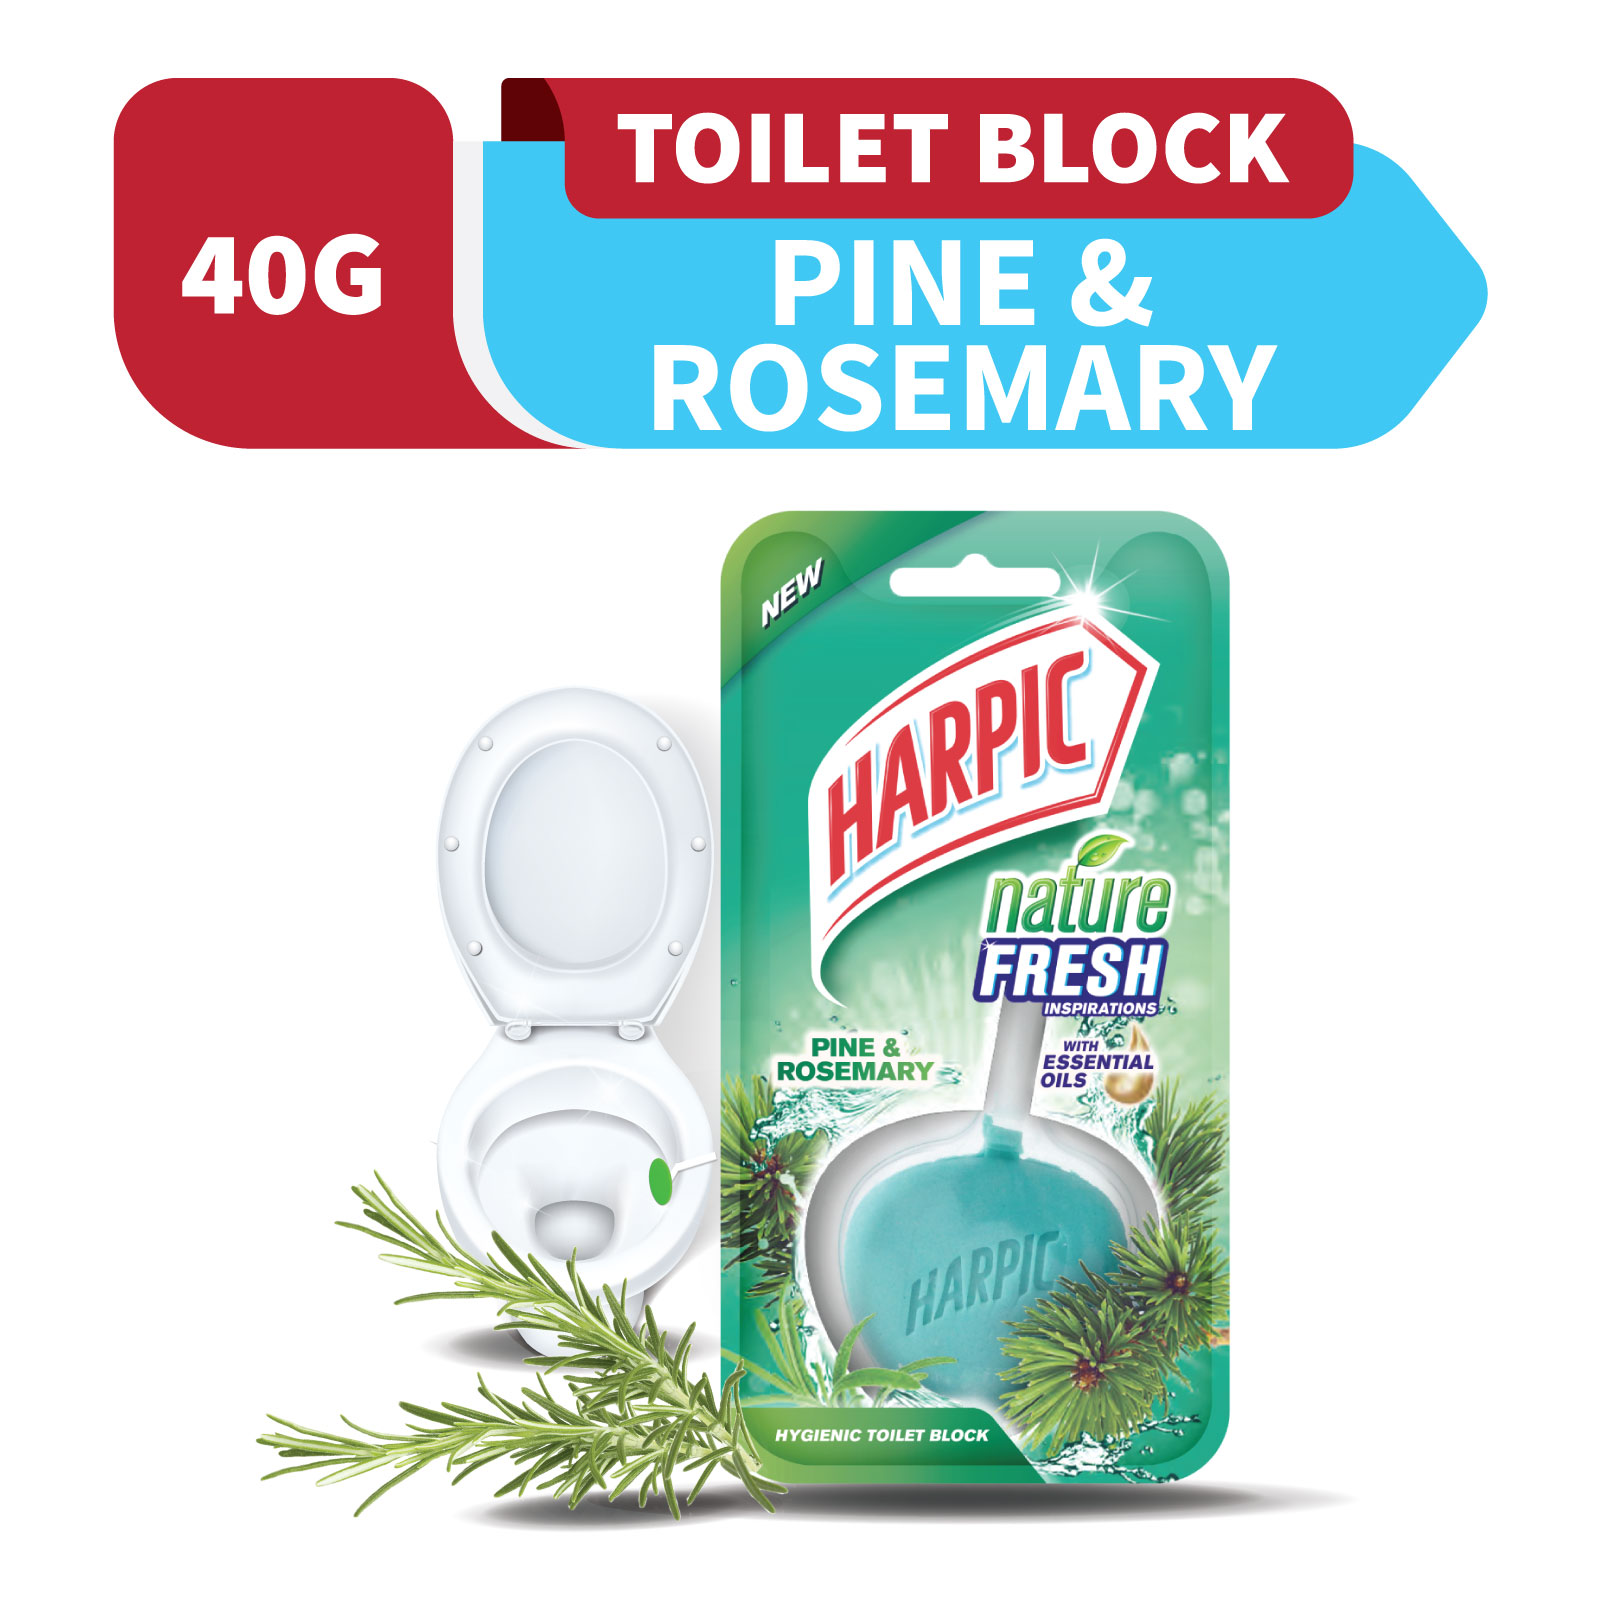 Harpic Nature Fresh Pine & Rosemary 40g